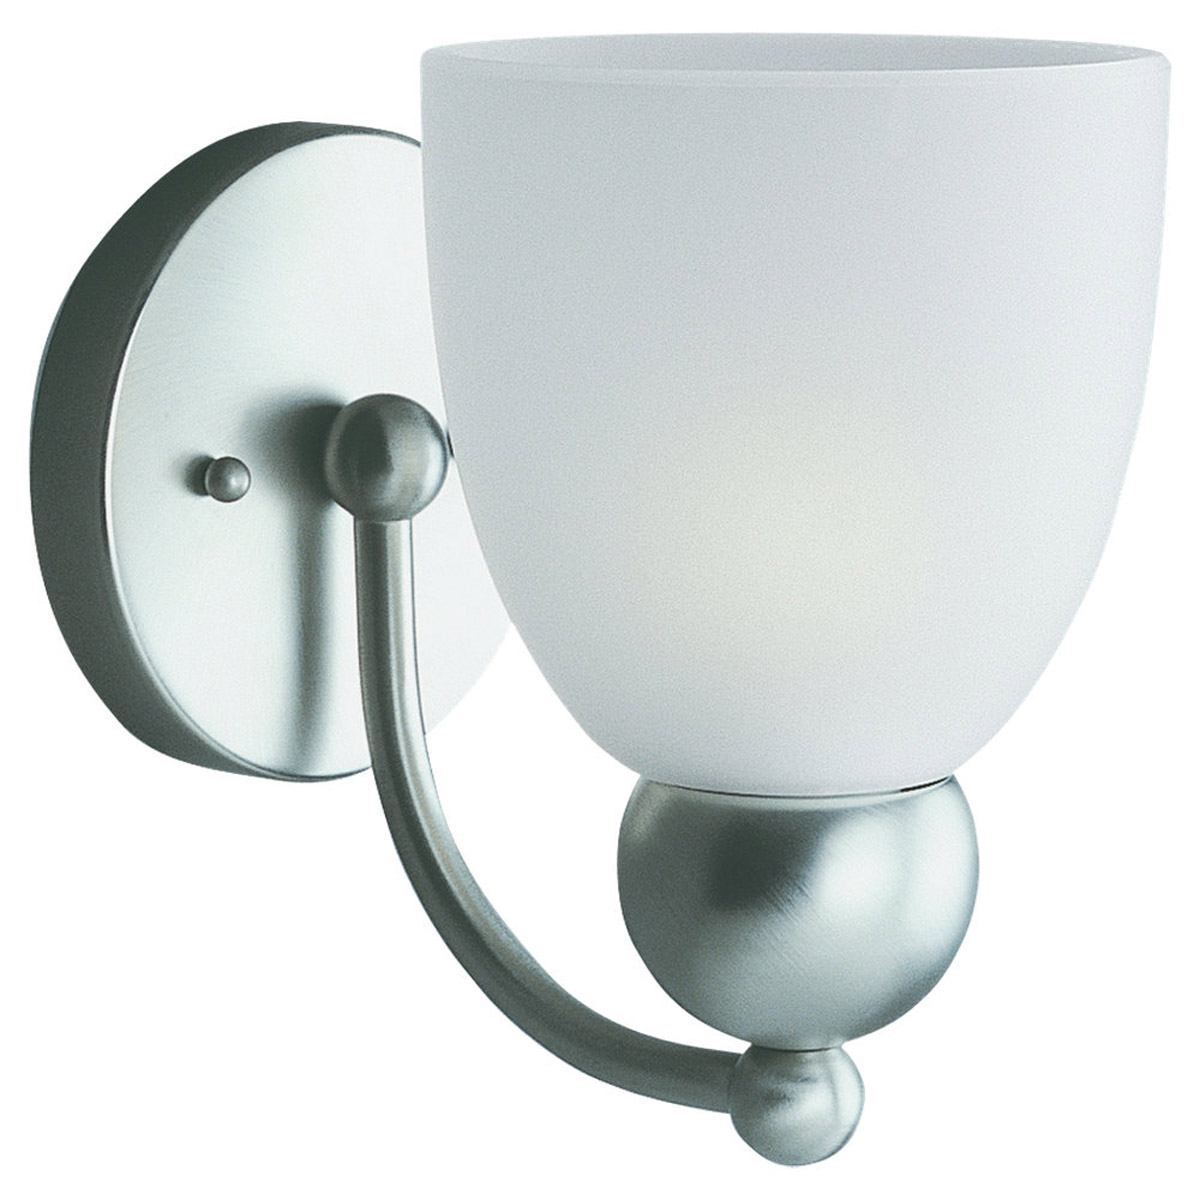 Sea Gull Lighting Metropolis 1 Light Bath Vanity in Brushed Nickel 41035-962